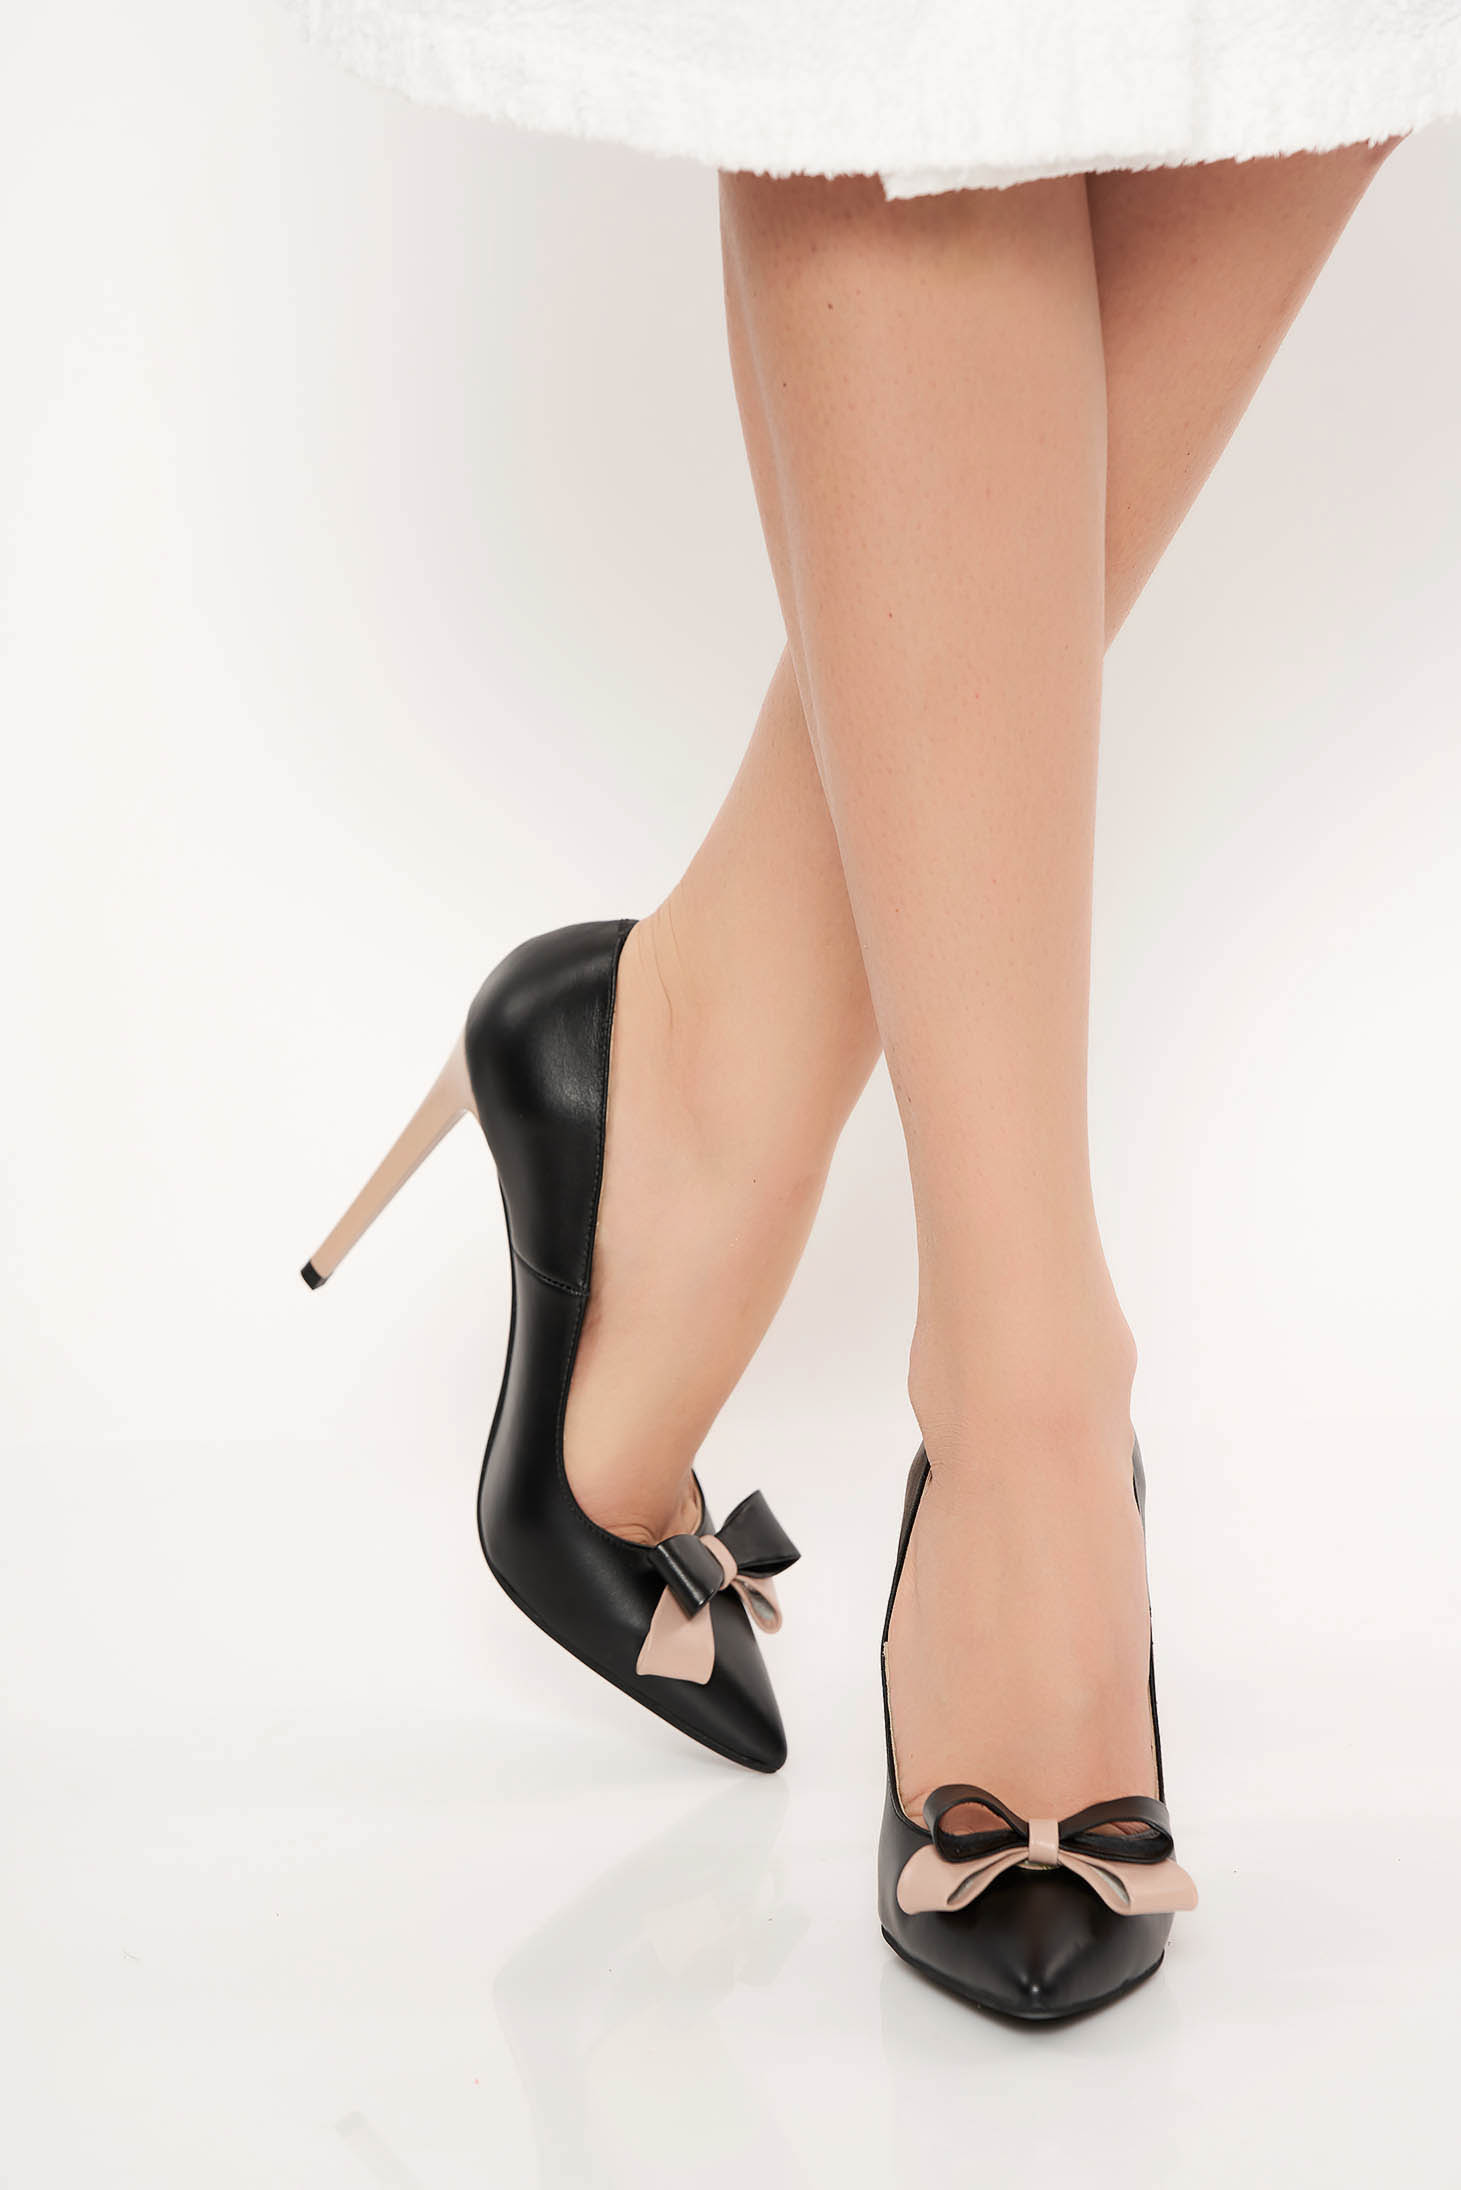 Black office shoes natural leather slightly pointed toe tip bow accessory